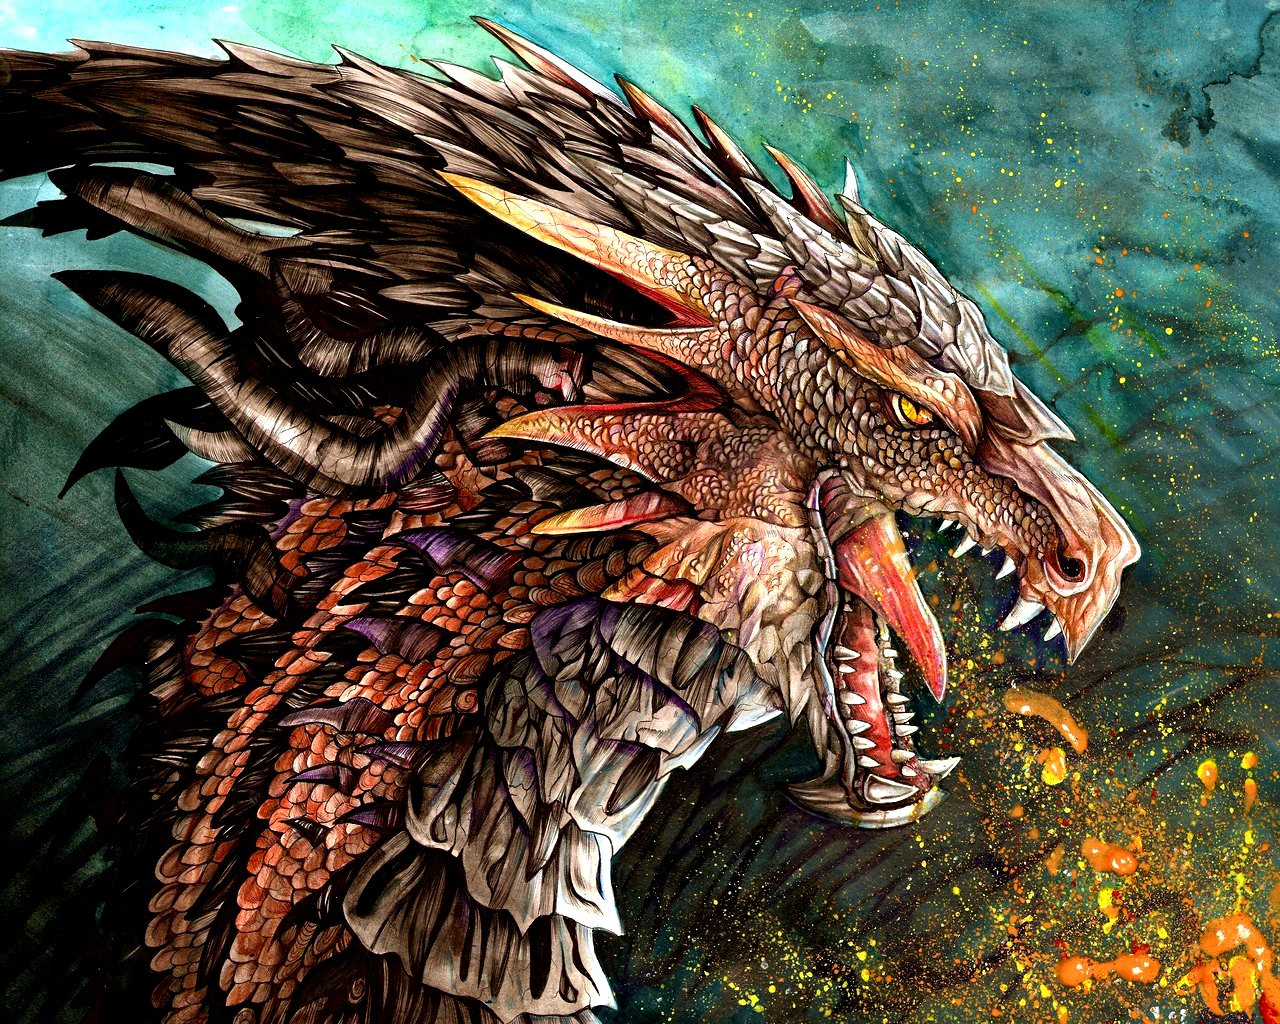 Dragon Wallpaper   Dragons Wallpaper 13975612 1280x1024